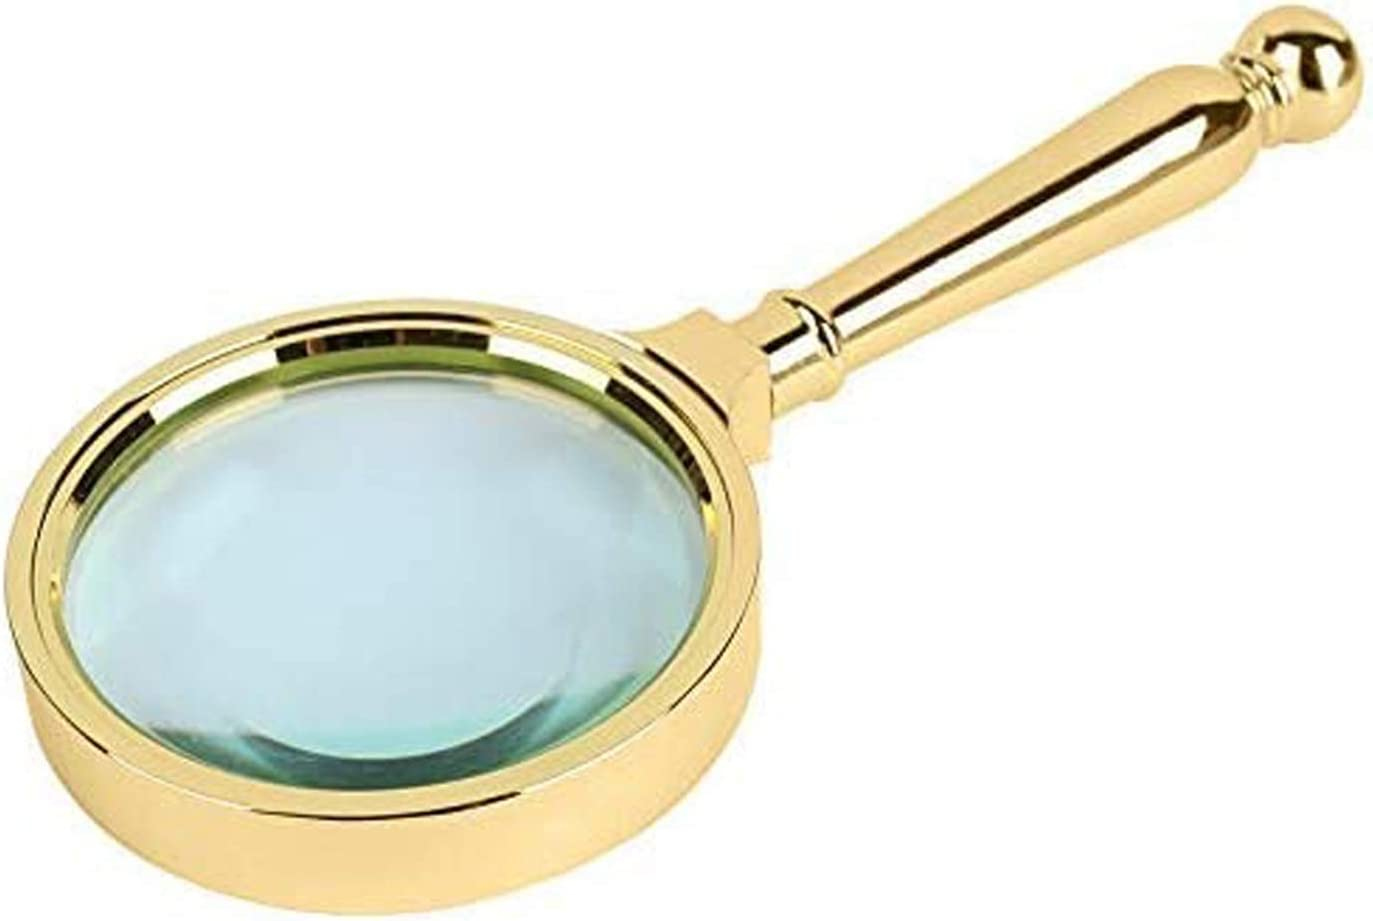 Trust CMMWA Super popular specialty store Portable Reading Magnifier 80mm Metal Retro Brass-Pla Full